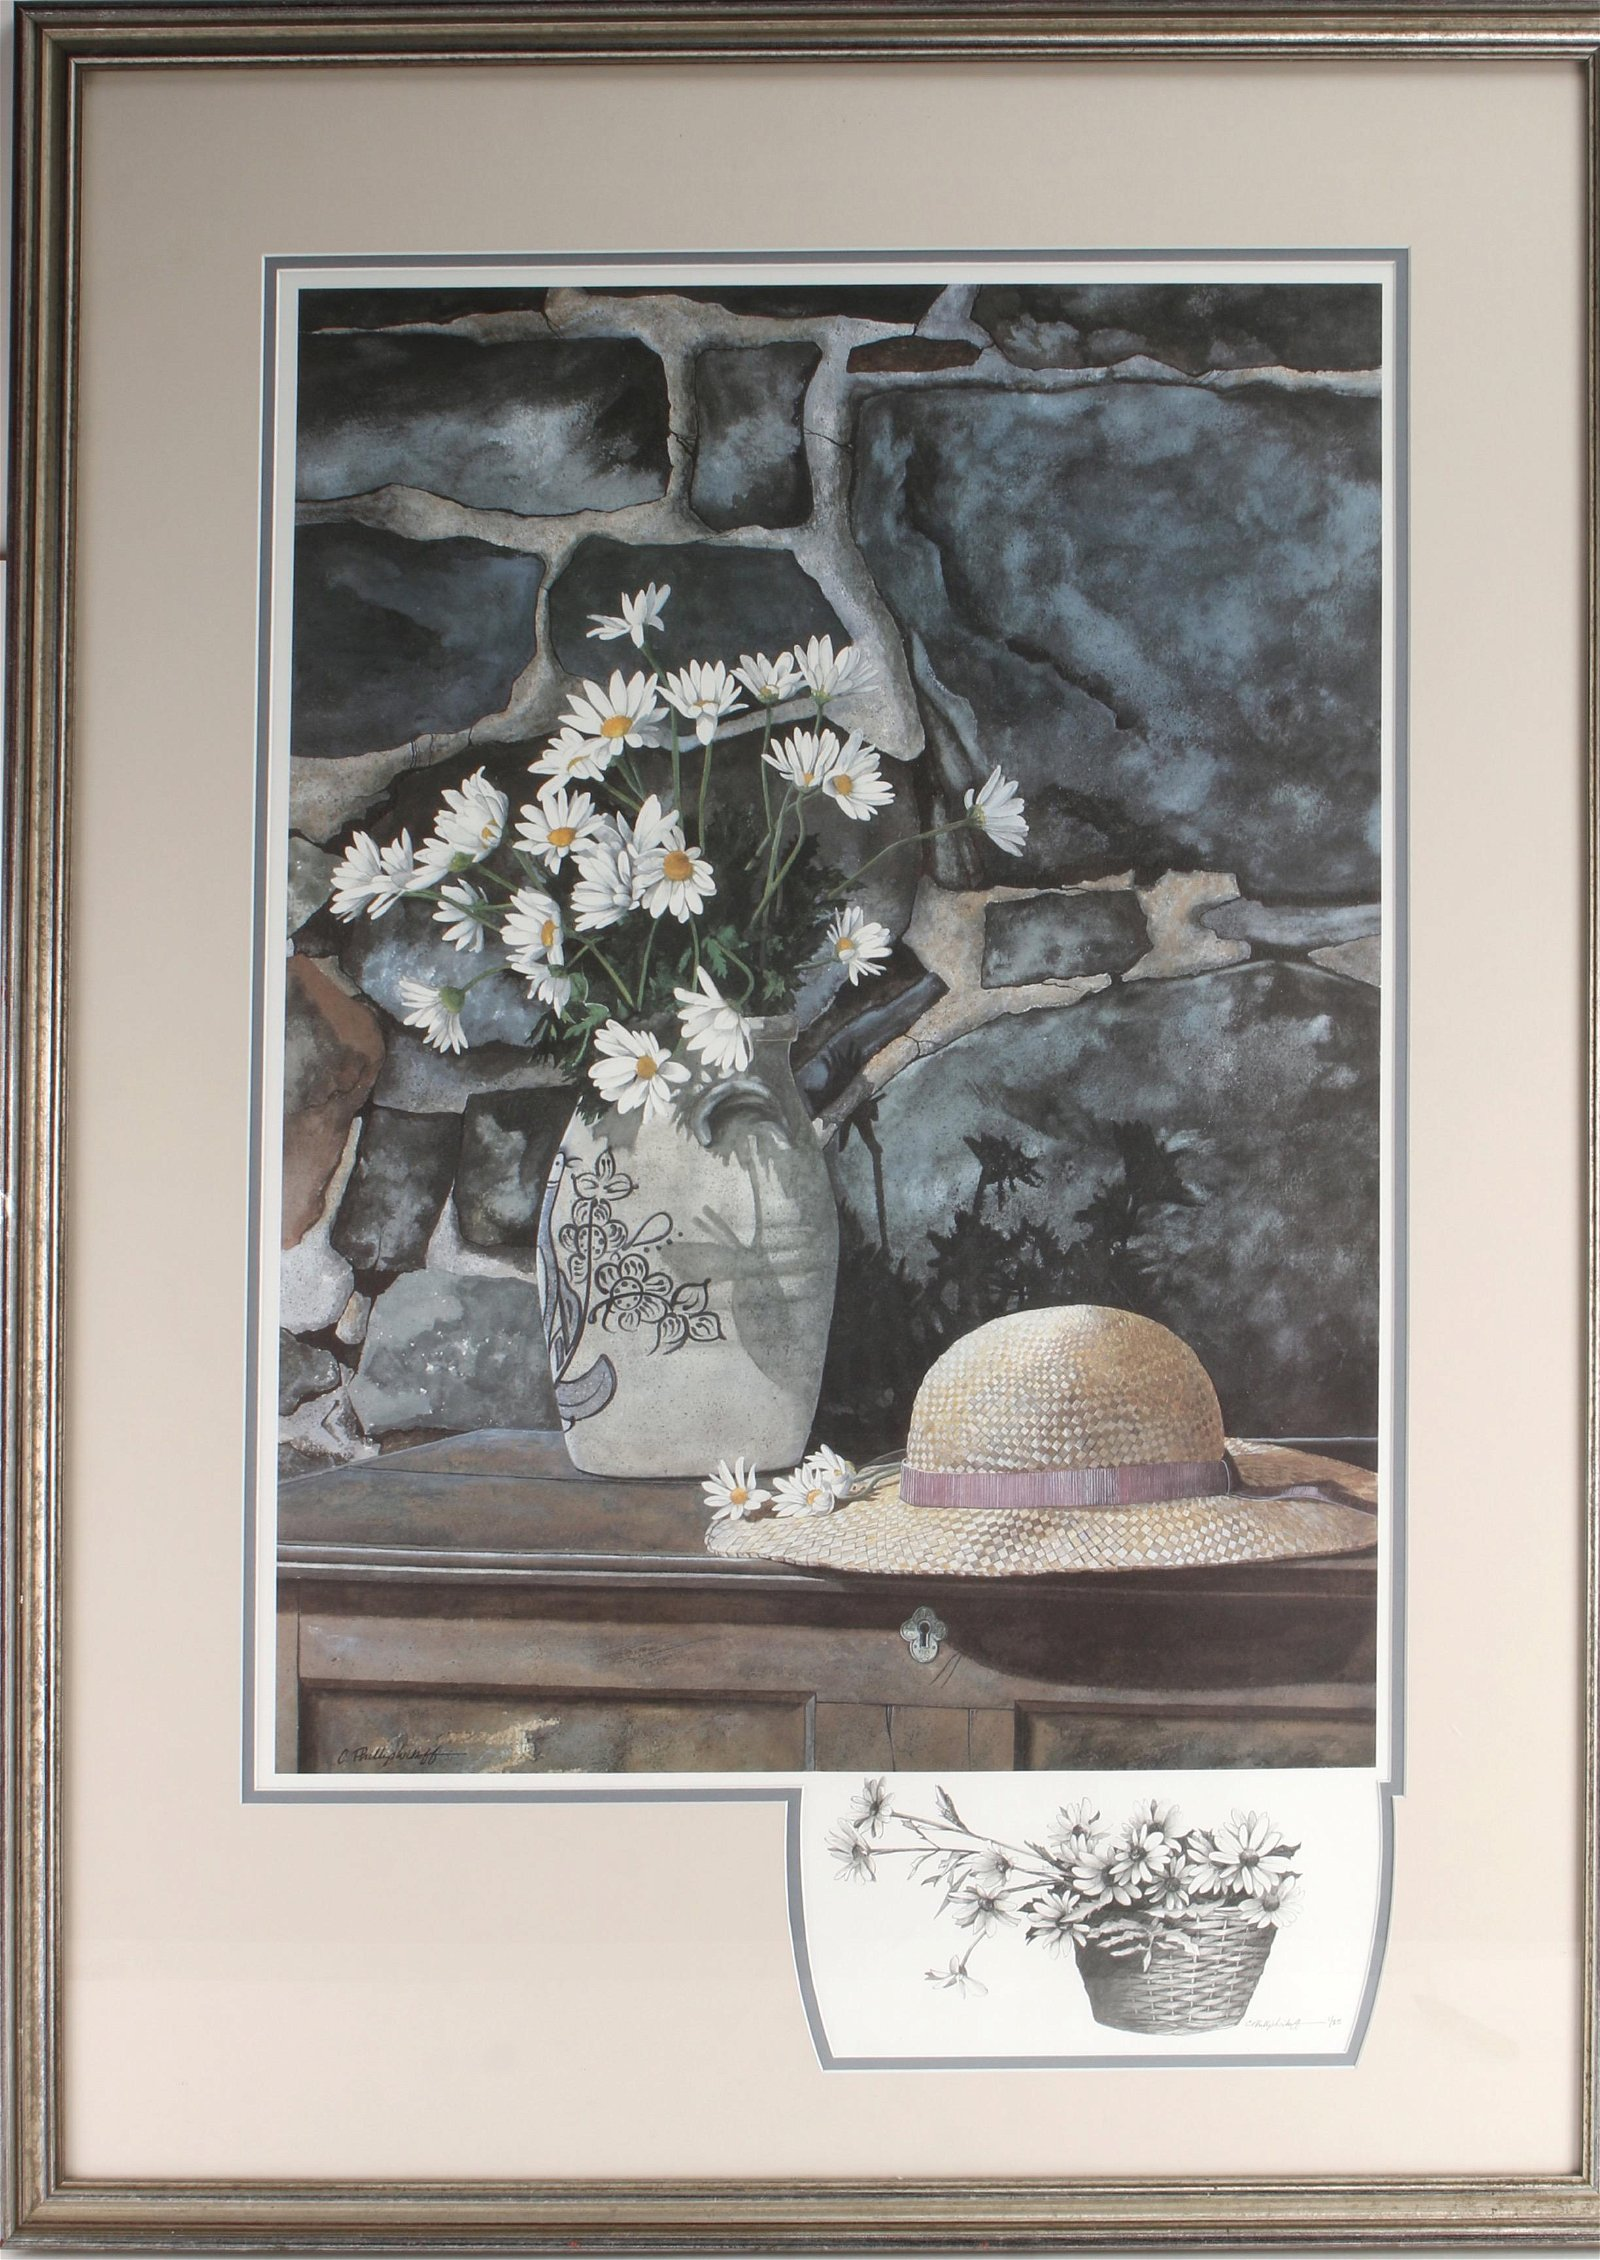 PAINTED SIGNED BY C. PHILLIP WIKOFF 1/25